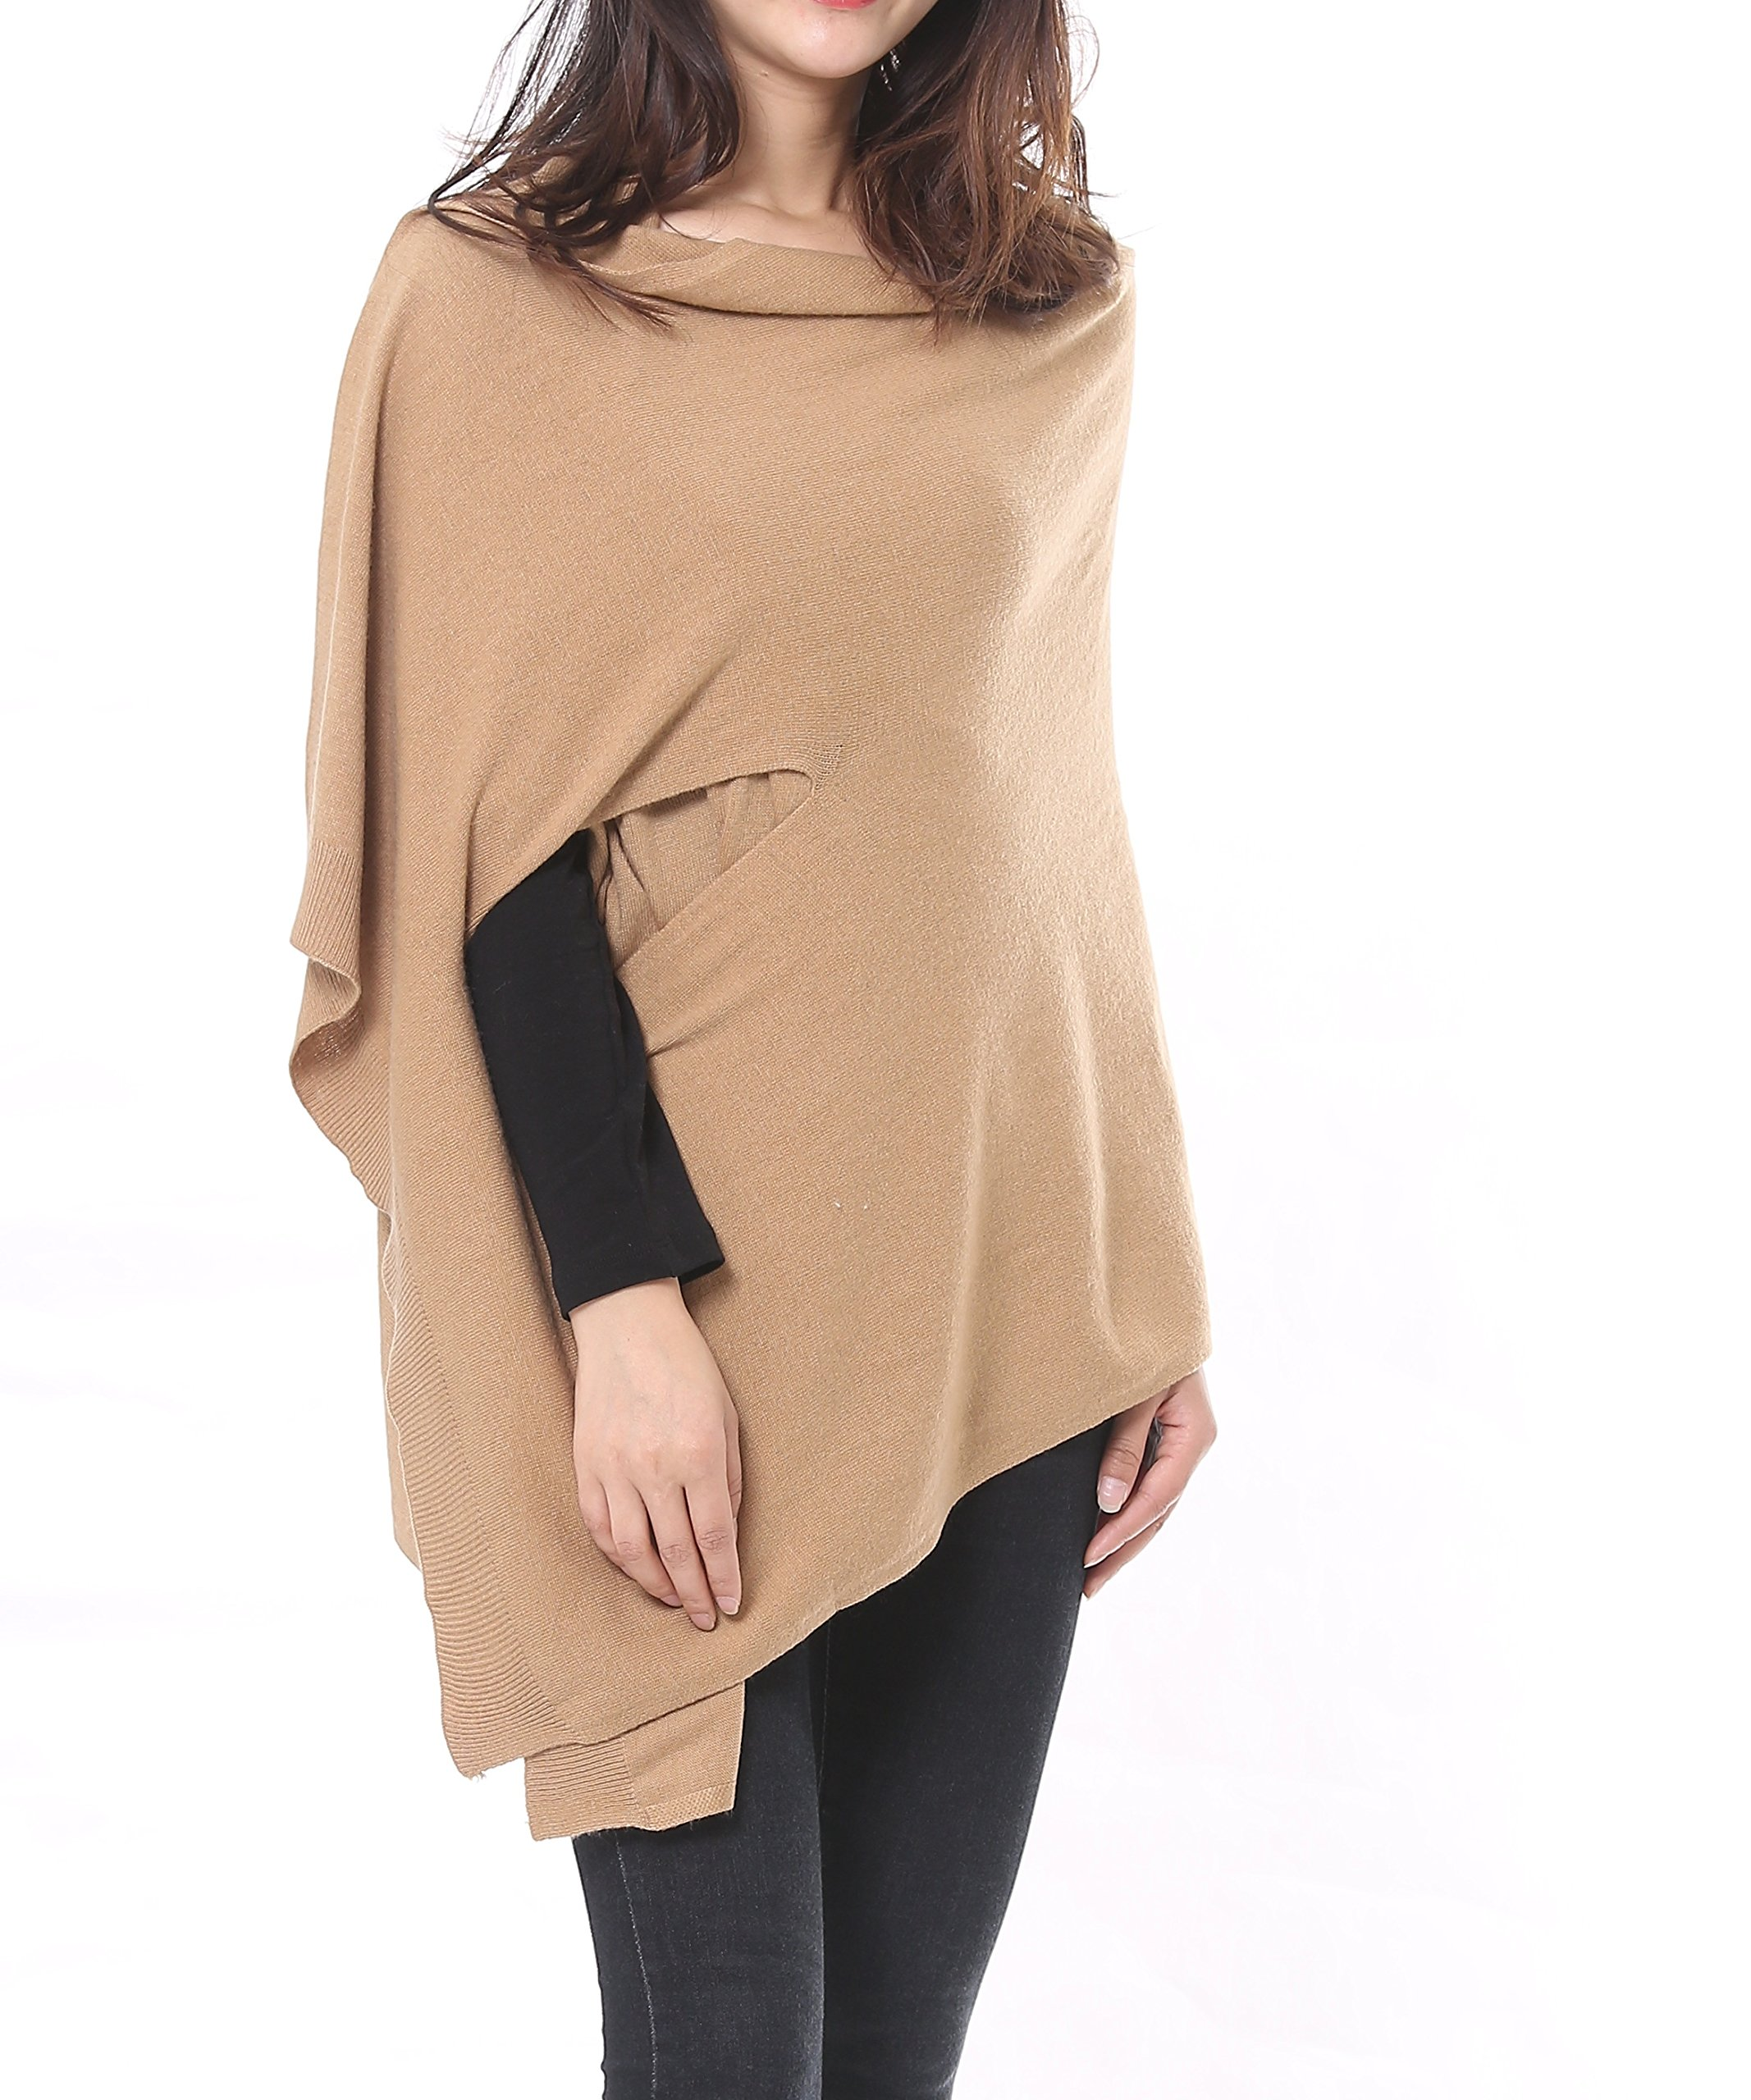 Bruceriver Women's Wool Blended Multi Style Long Knit Scarf Poncho Topper Size XS/S (Camel)